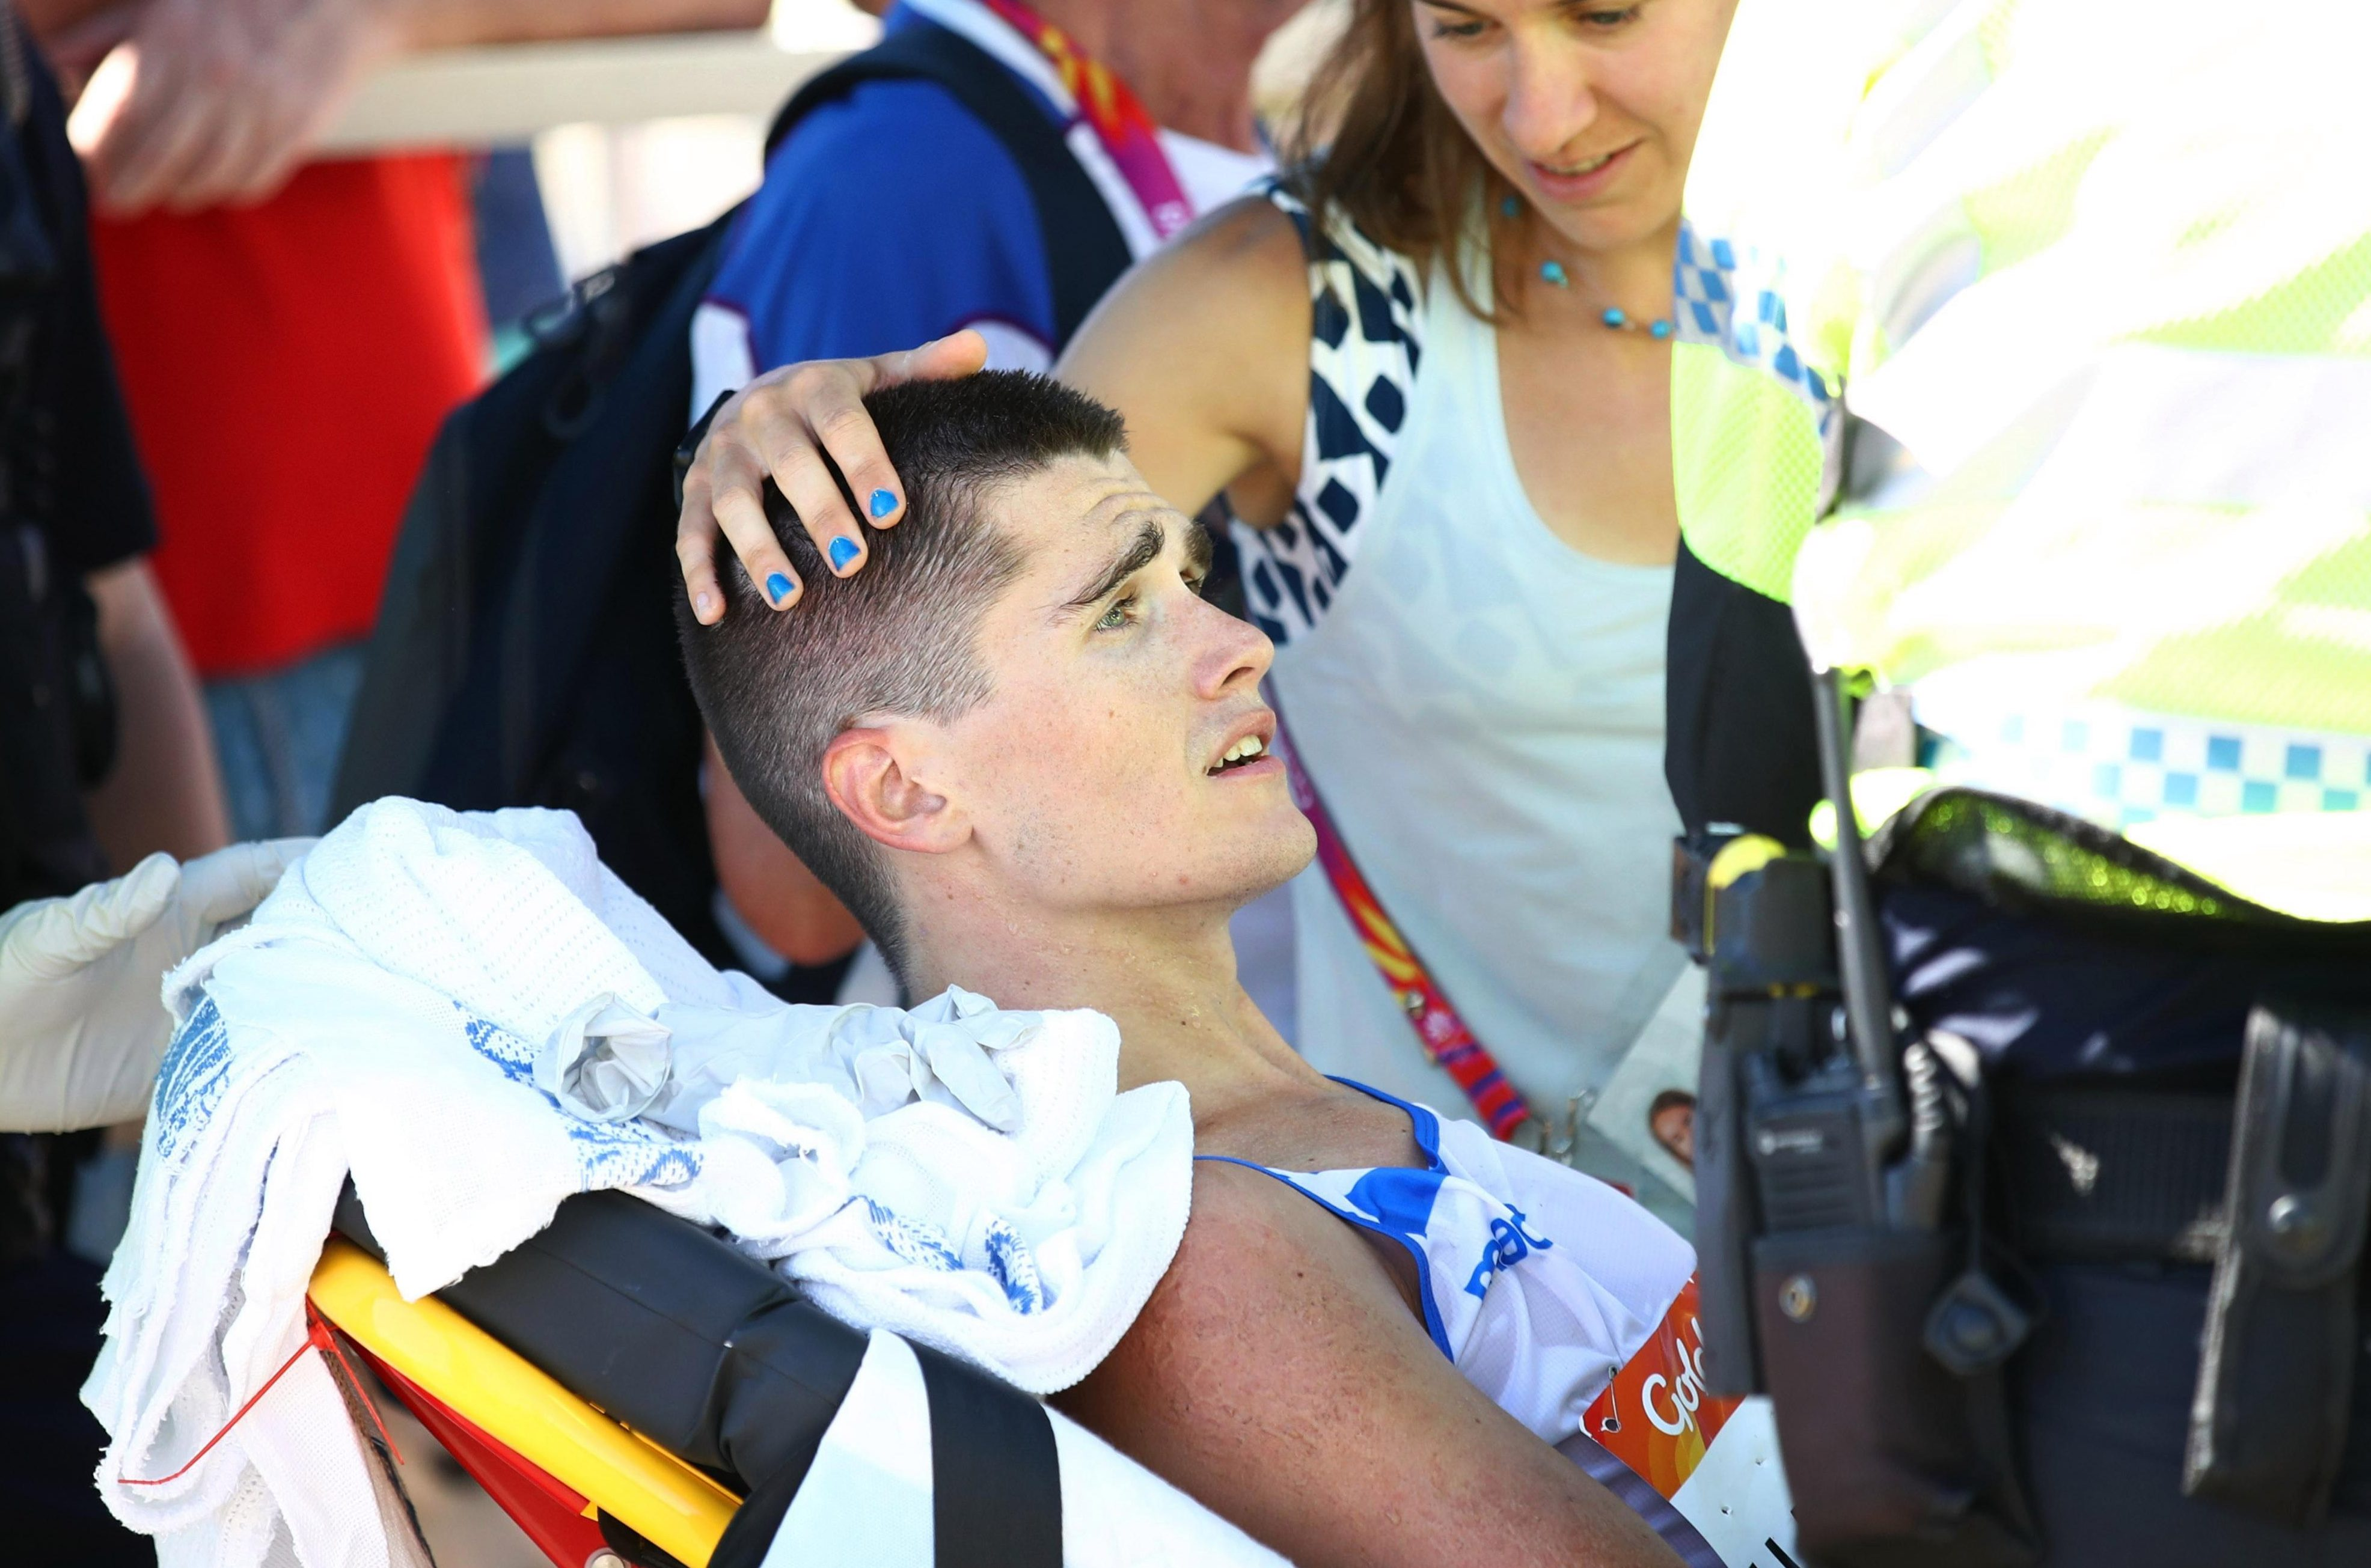 Scottish athlete Callum Hawkins collapsed while leading the marathon in the Commonwealth Games